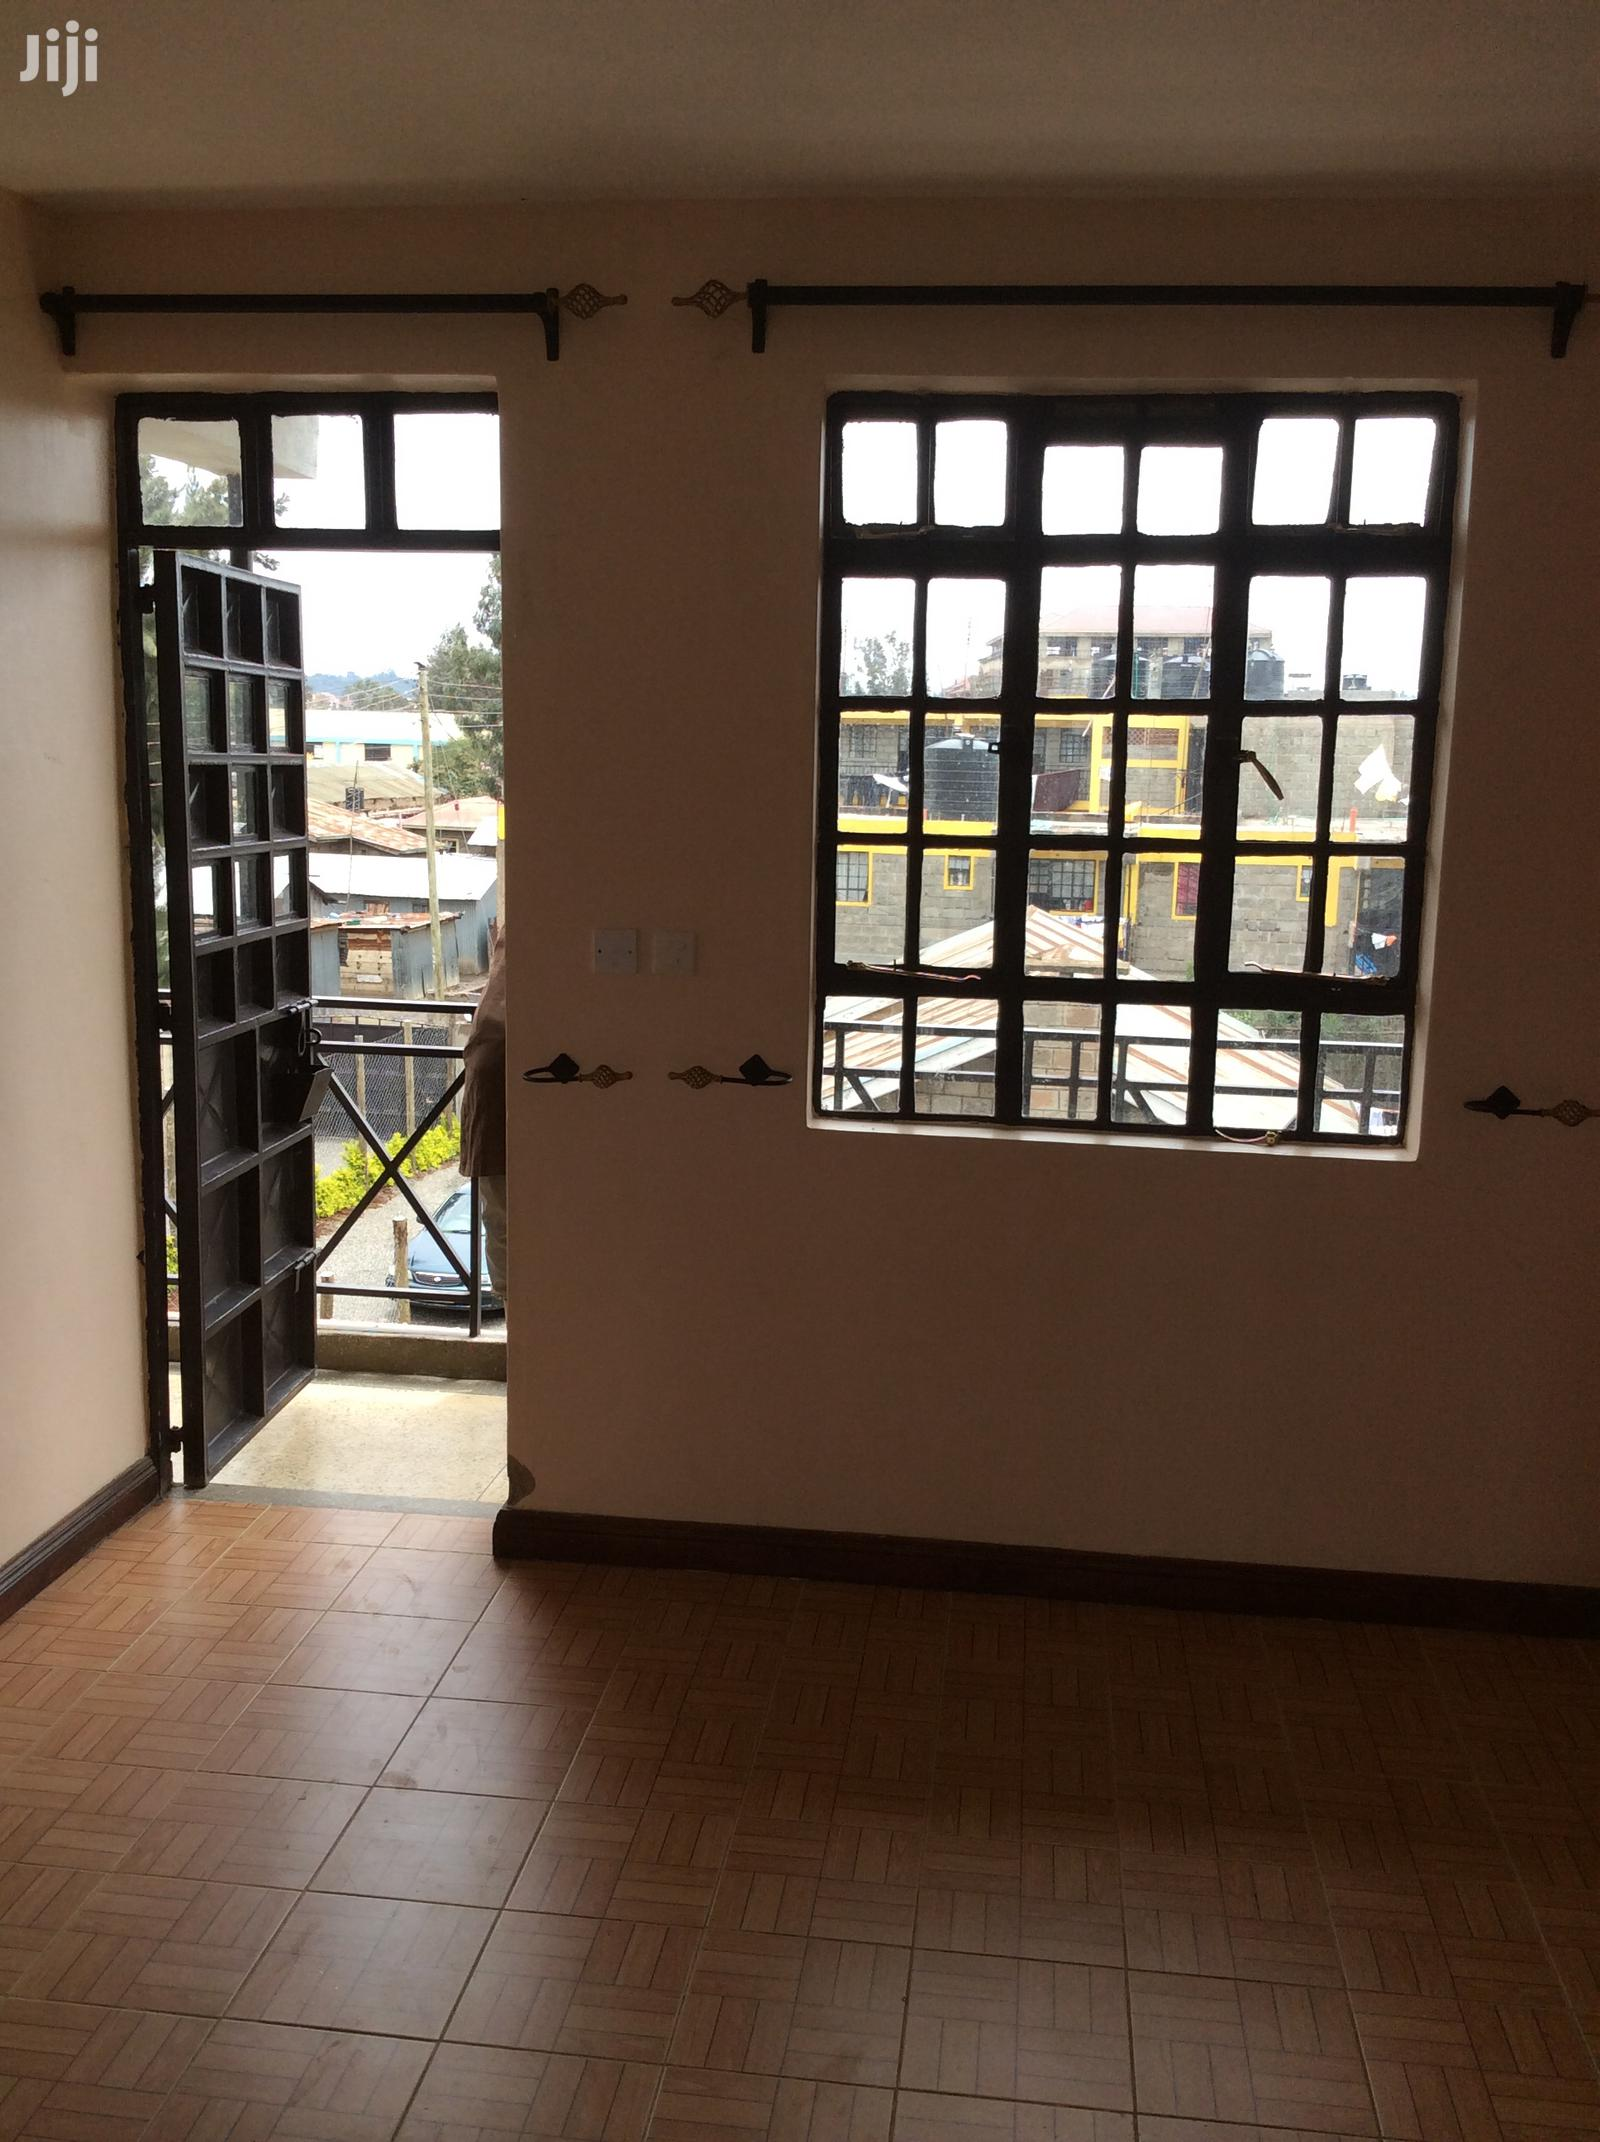 Bedsitter For Rent | Houses & Apartments For Rent for sale in Ongata Rongai, Kajiado, Kenya